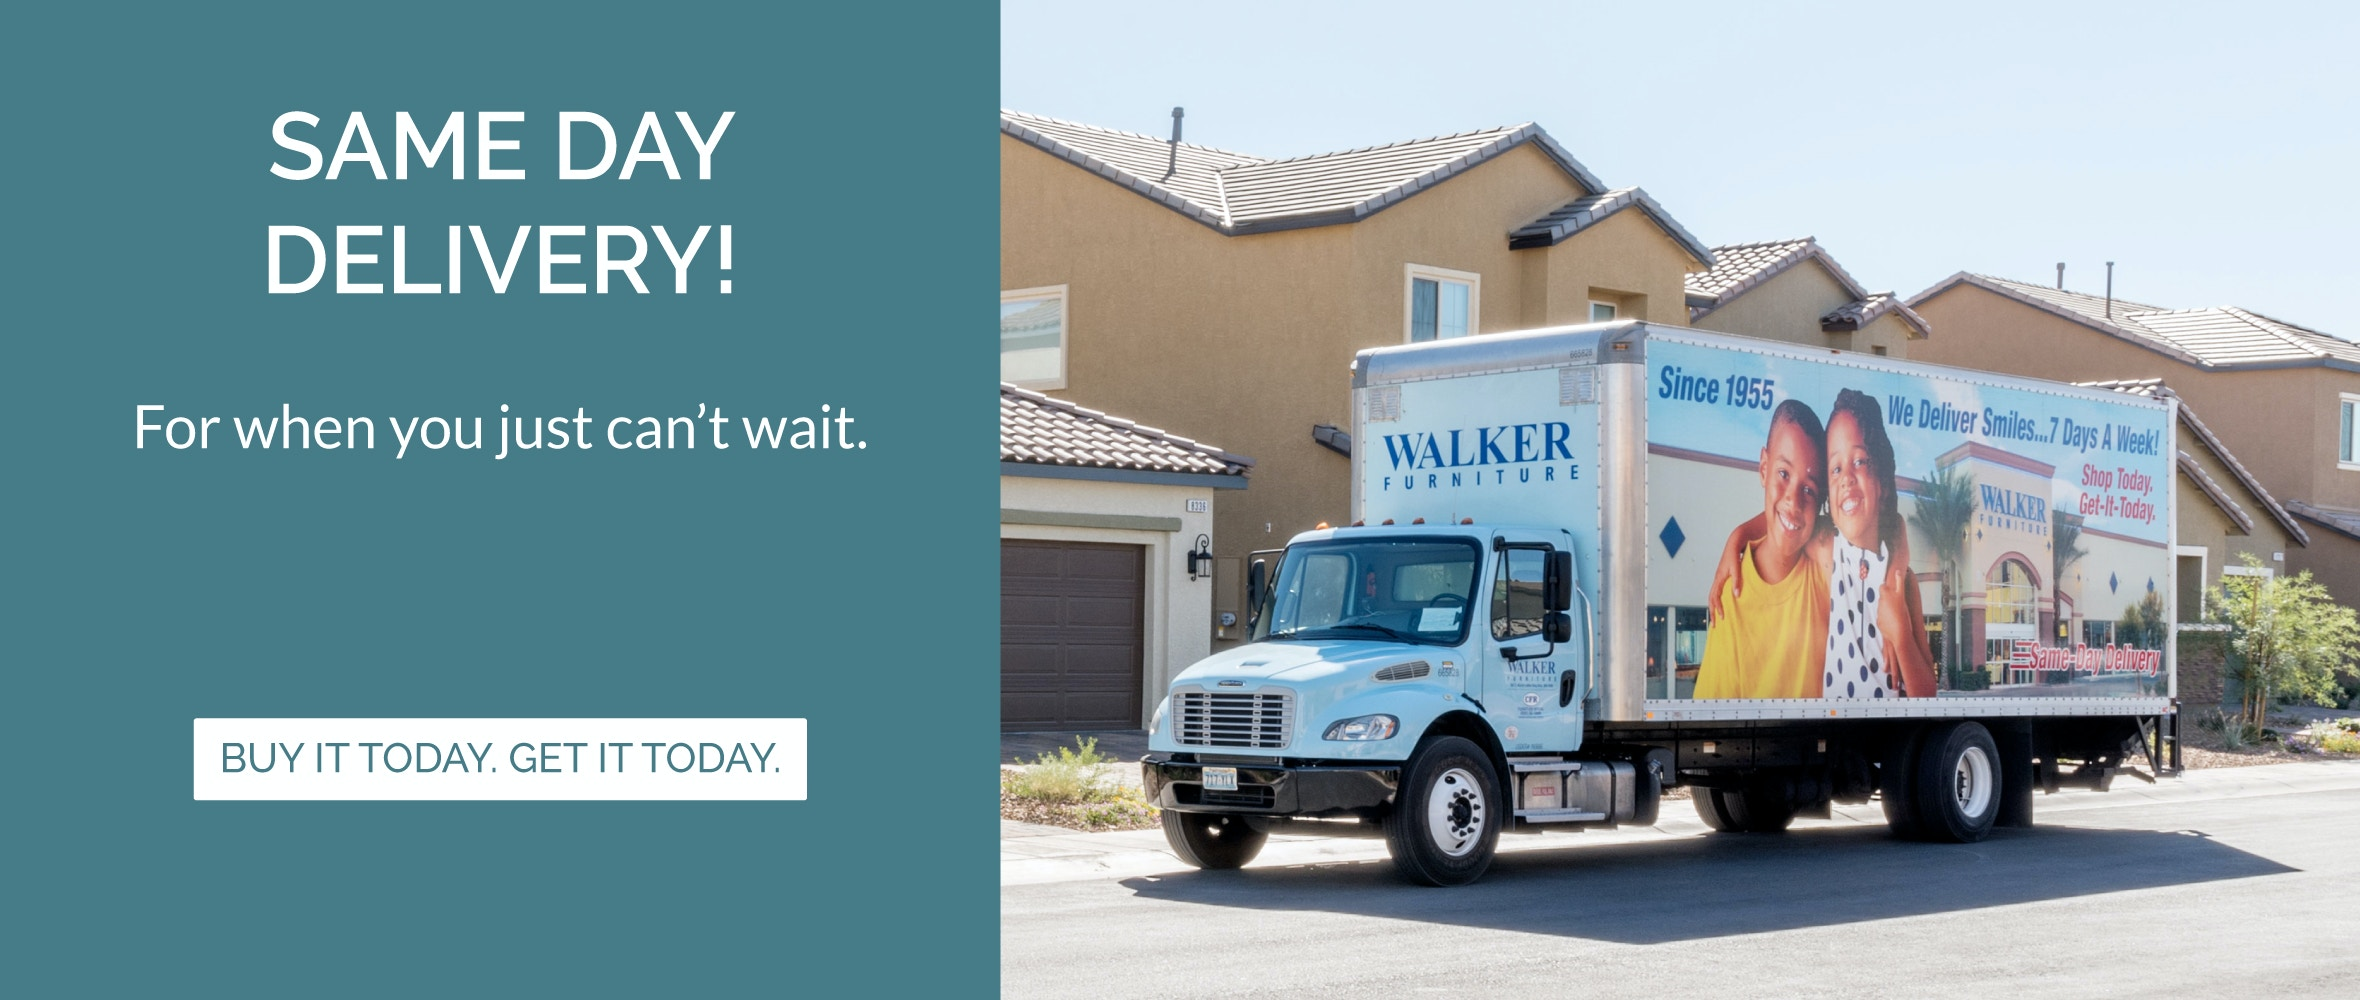 Same day delivery from Walker Furniture. Walker Furniture Store   Largest Selection of Furniture in Las Vegas